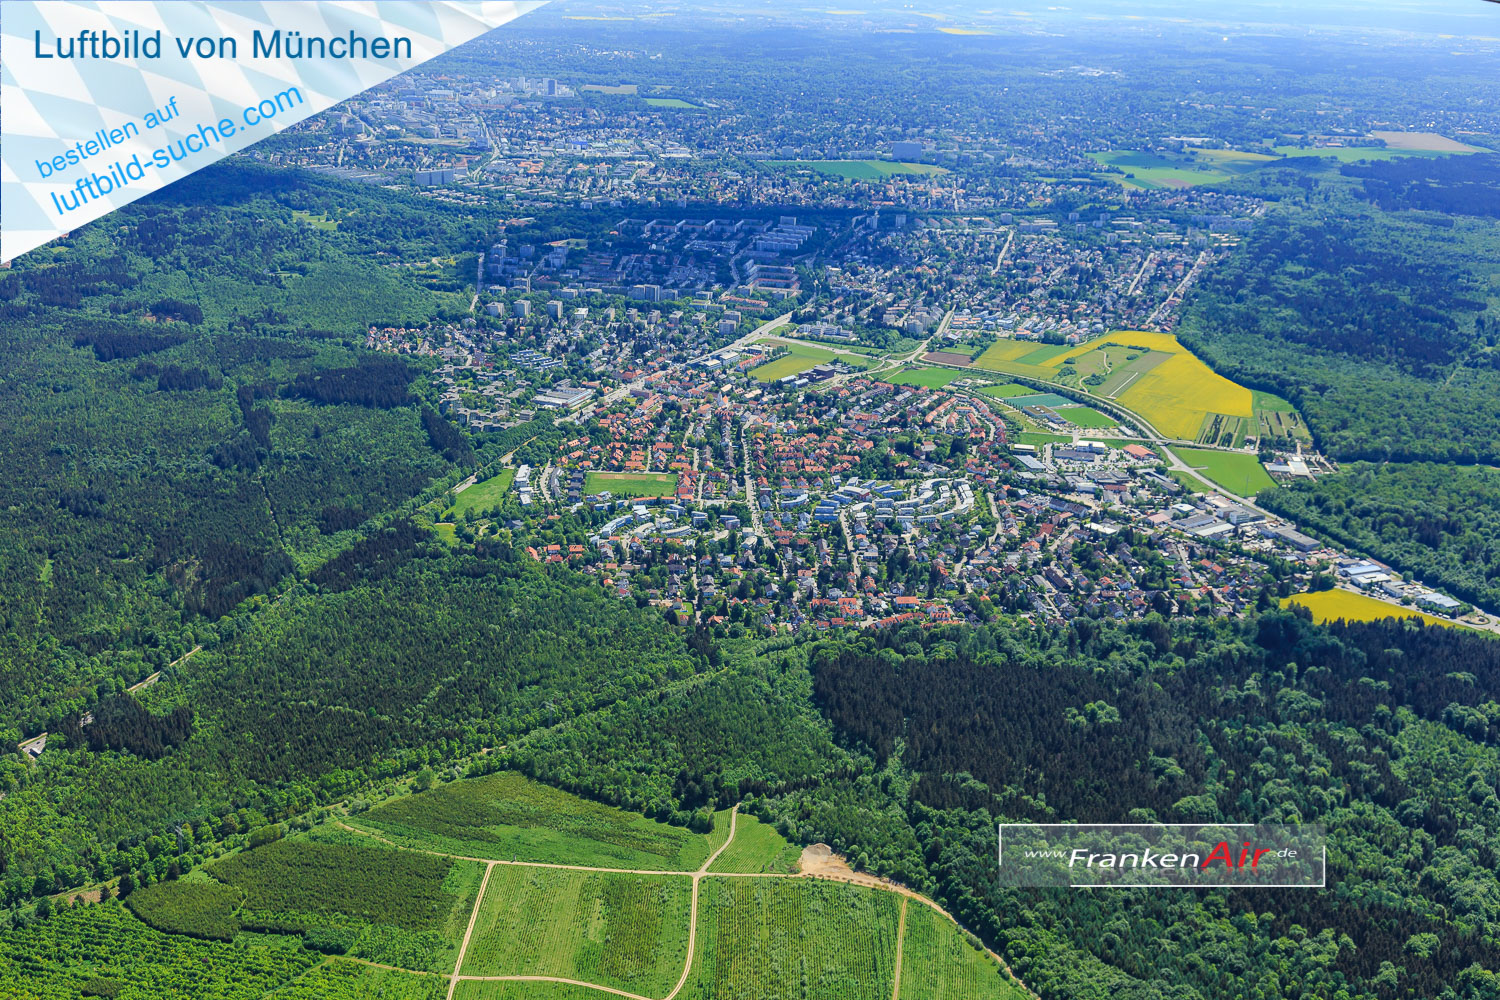 Neuried-muenchner-strasse-neuried-2015-4065